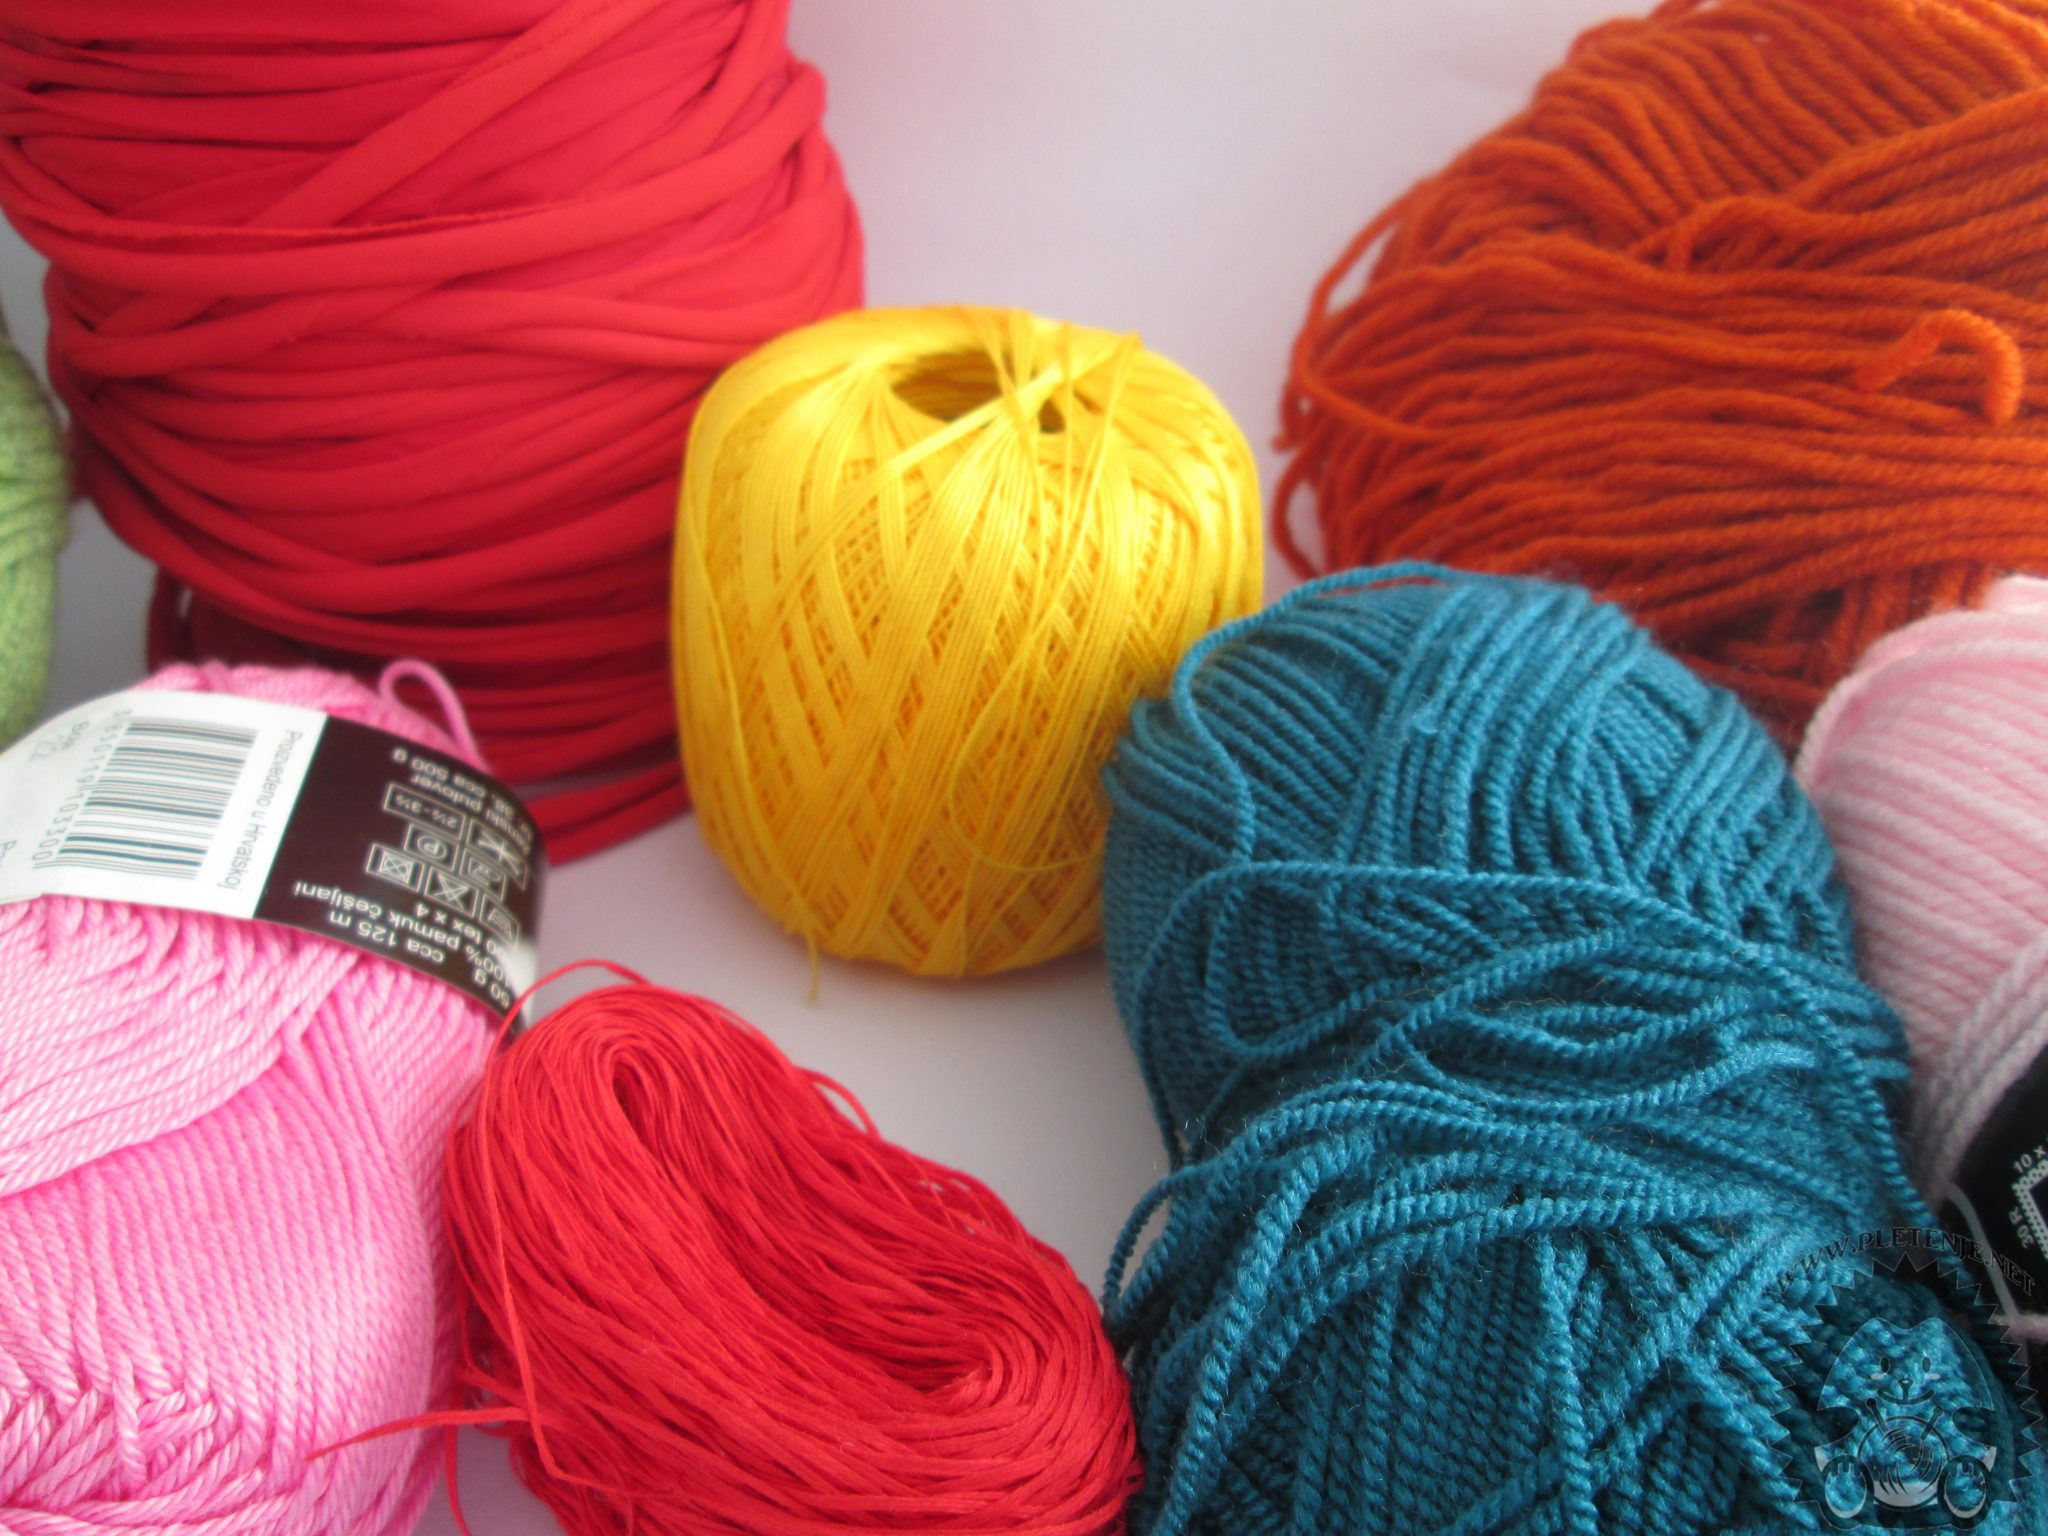 Yarn for knitting and crochet